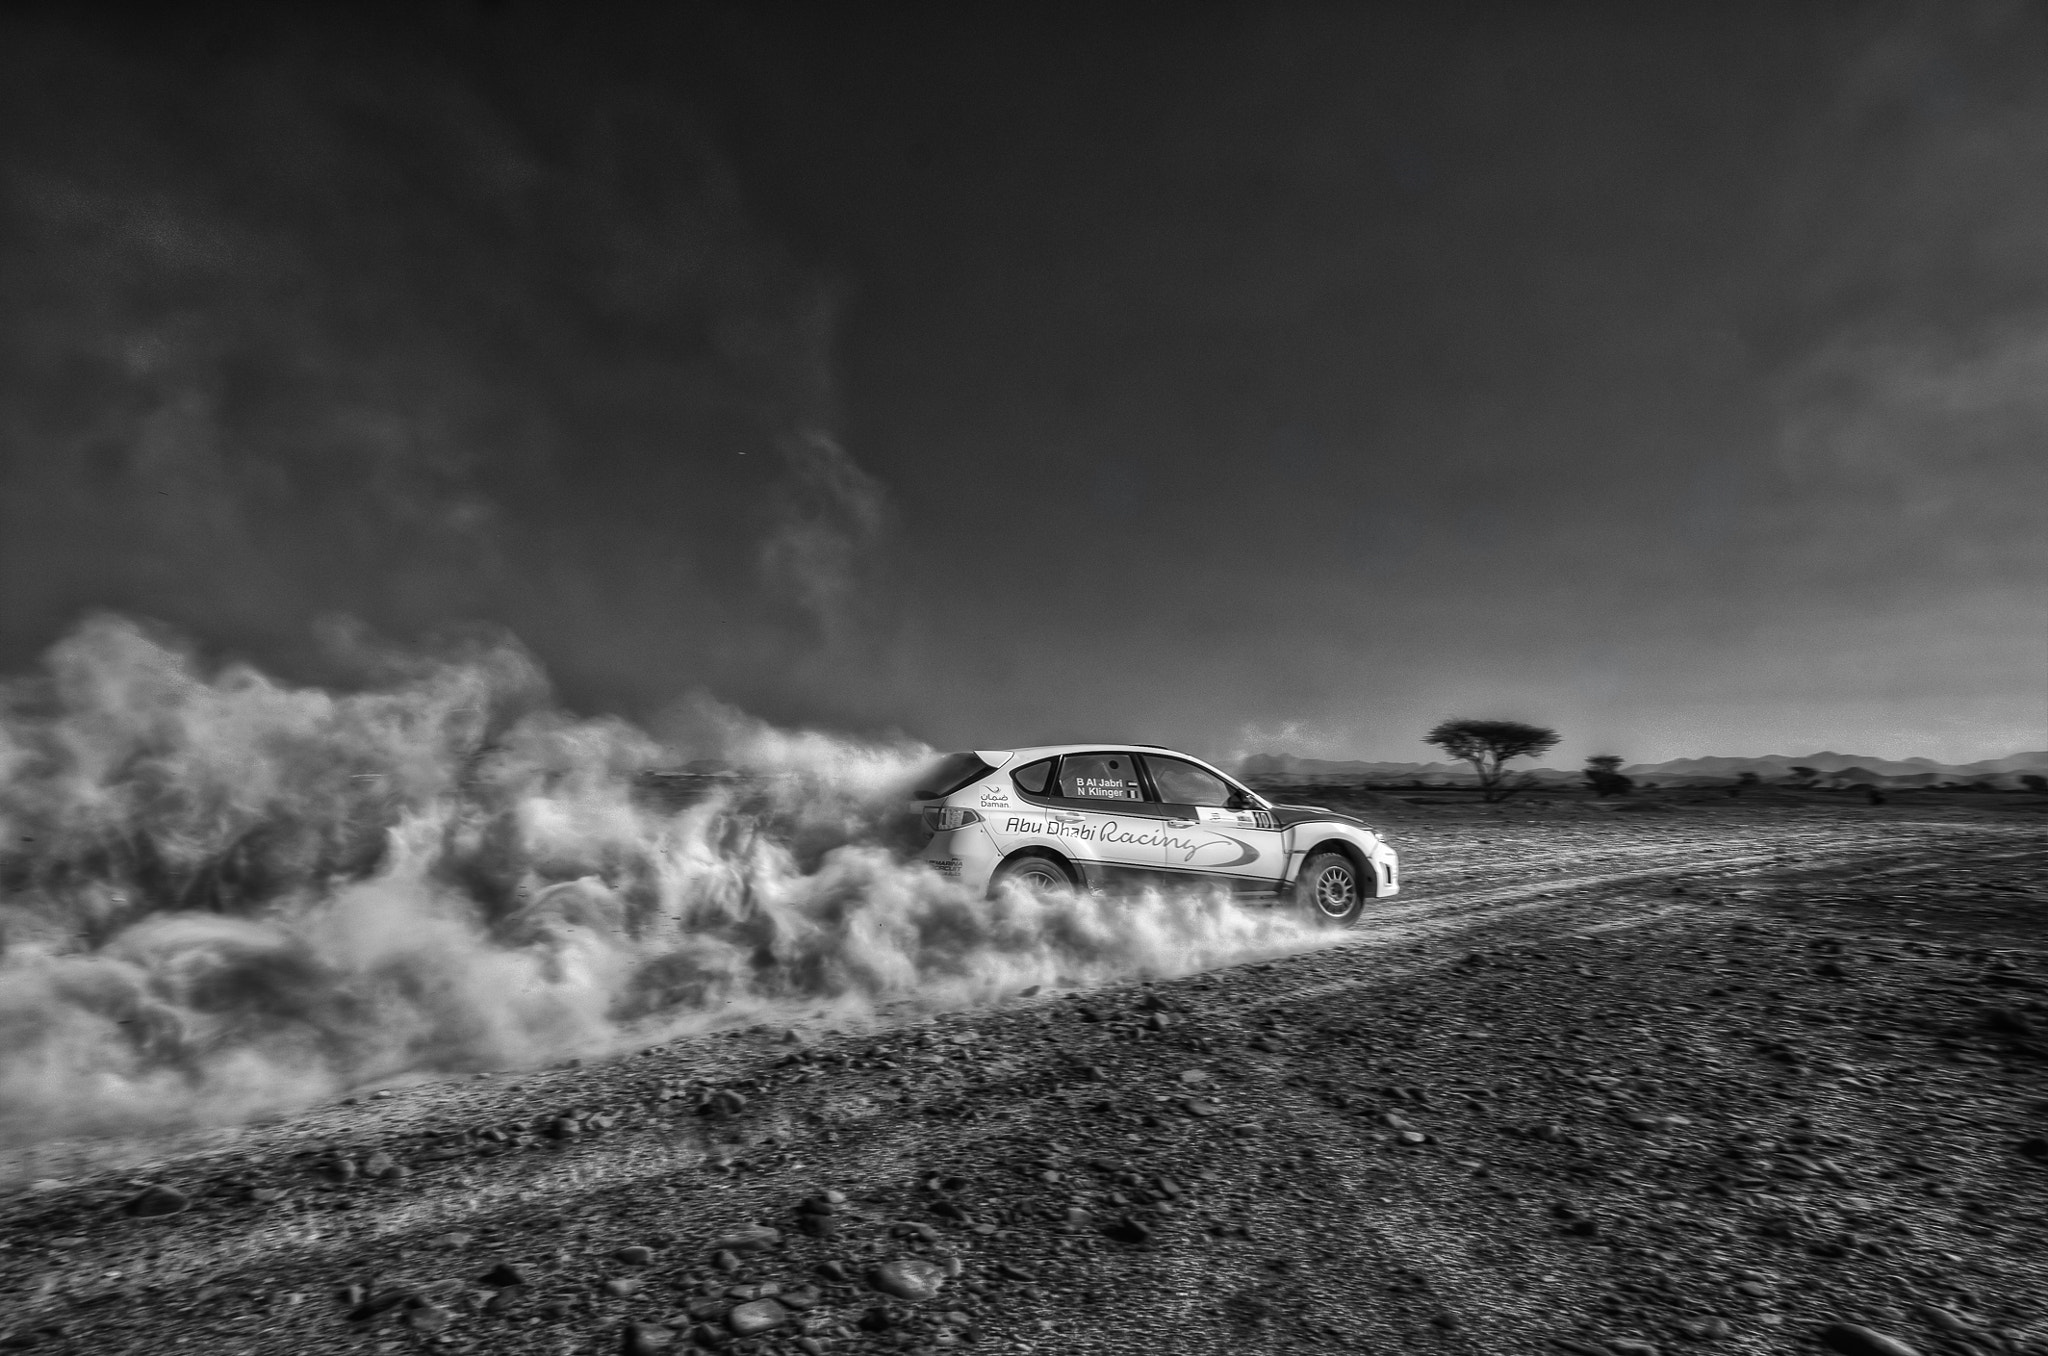 Photograph Entrant - Abu Dhabi Racing by Zoheb Desai on 500px